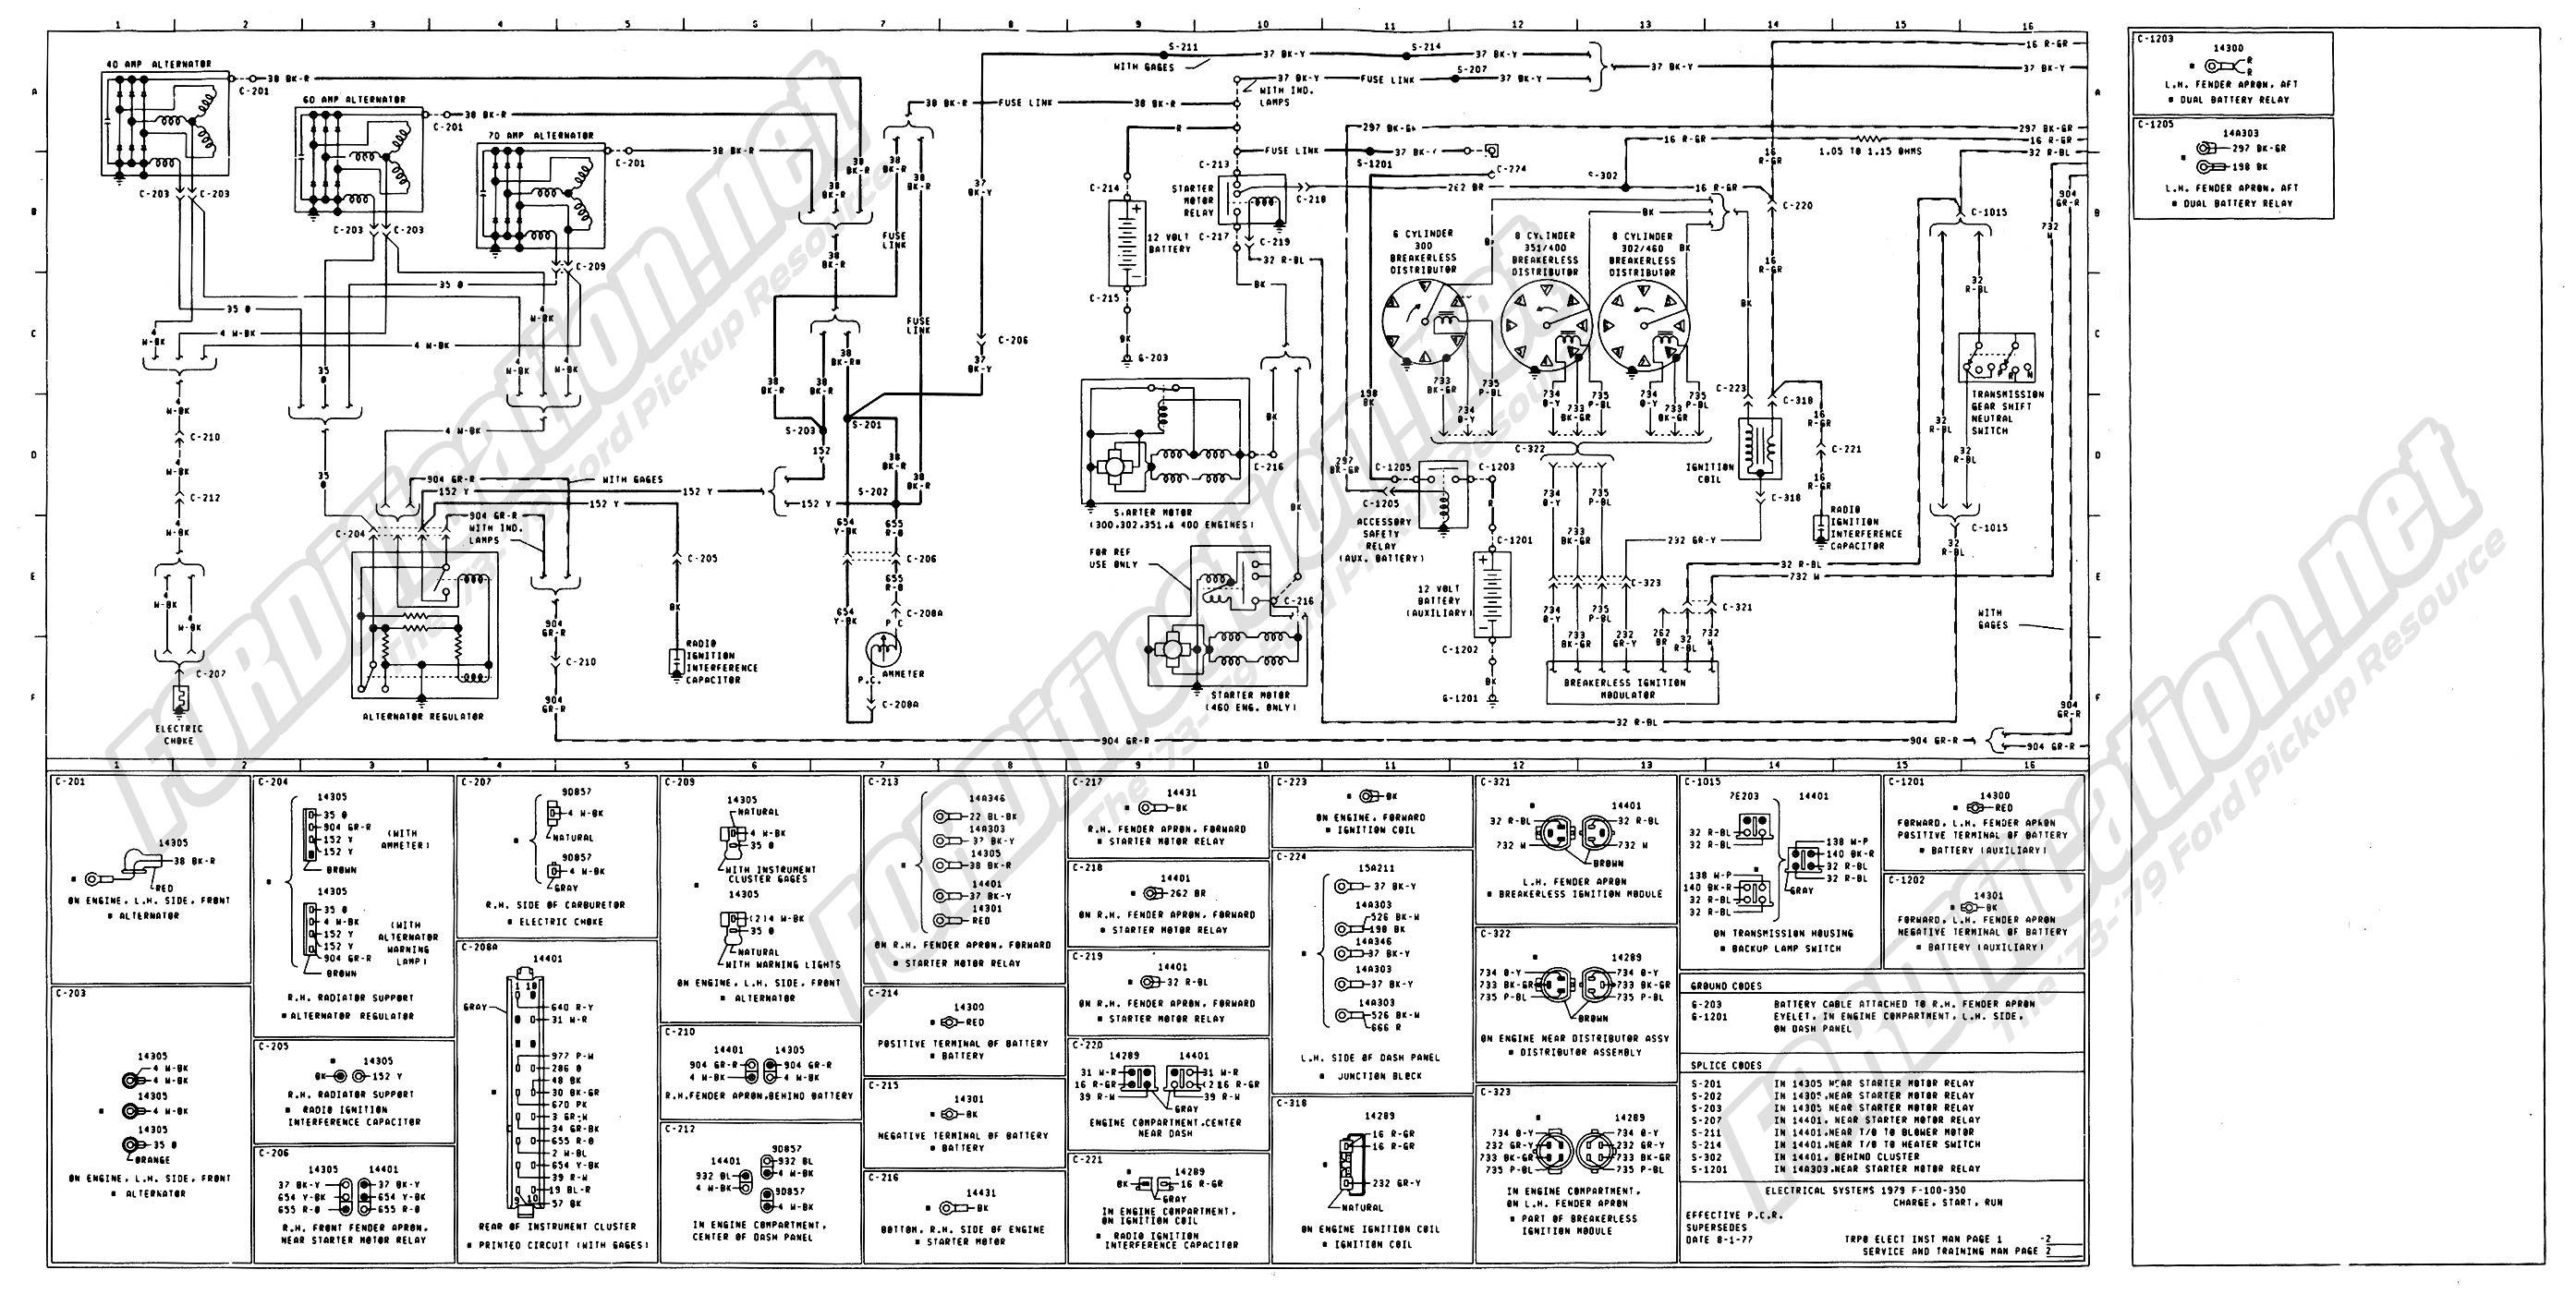 [DIAGRAM_5NL]  AA610C8 2001 Ford E350 Van Fuse Diagram | Wiring Library | 1988 Ford E 350 Wiring Diagram |  | Wiring Library